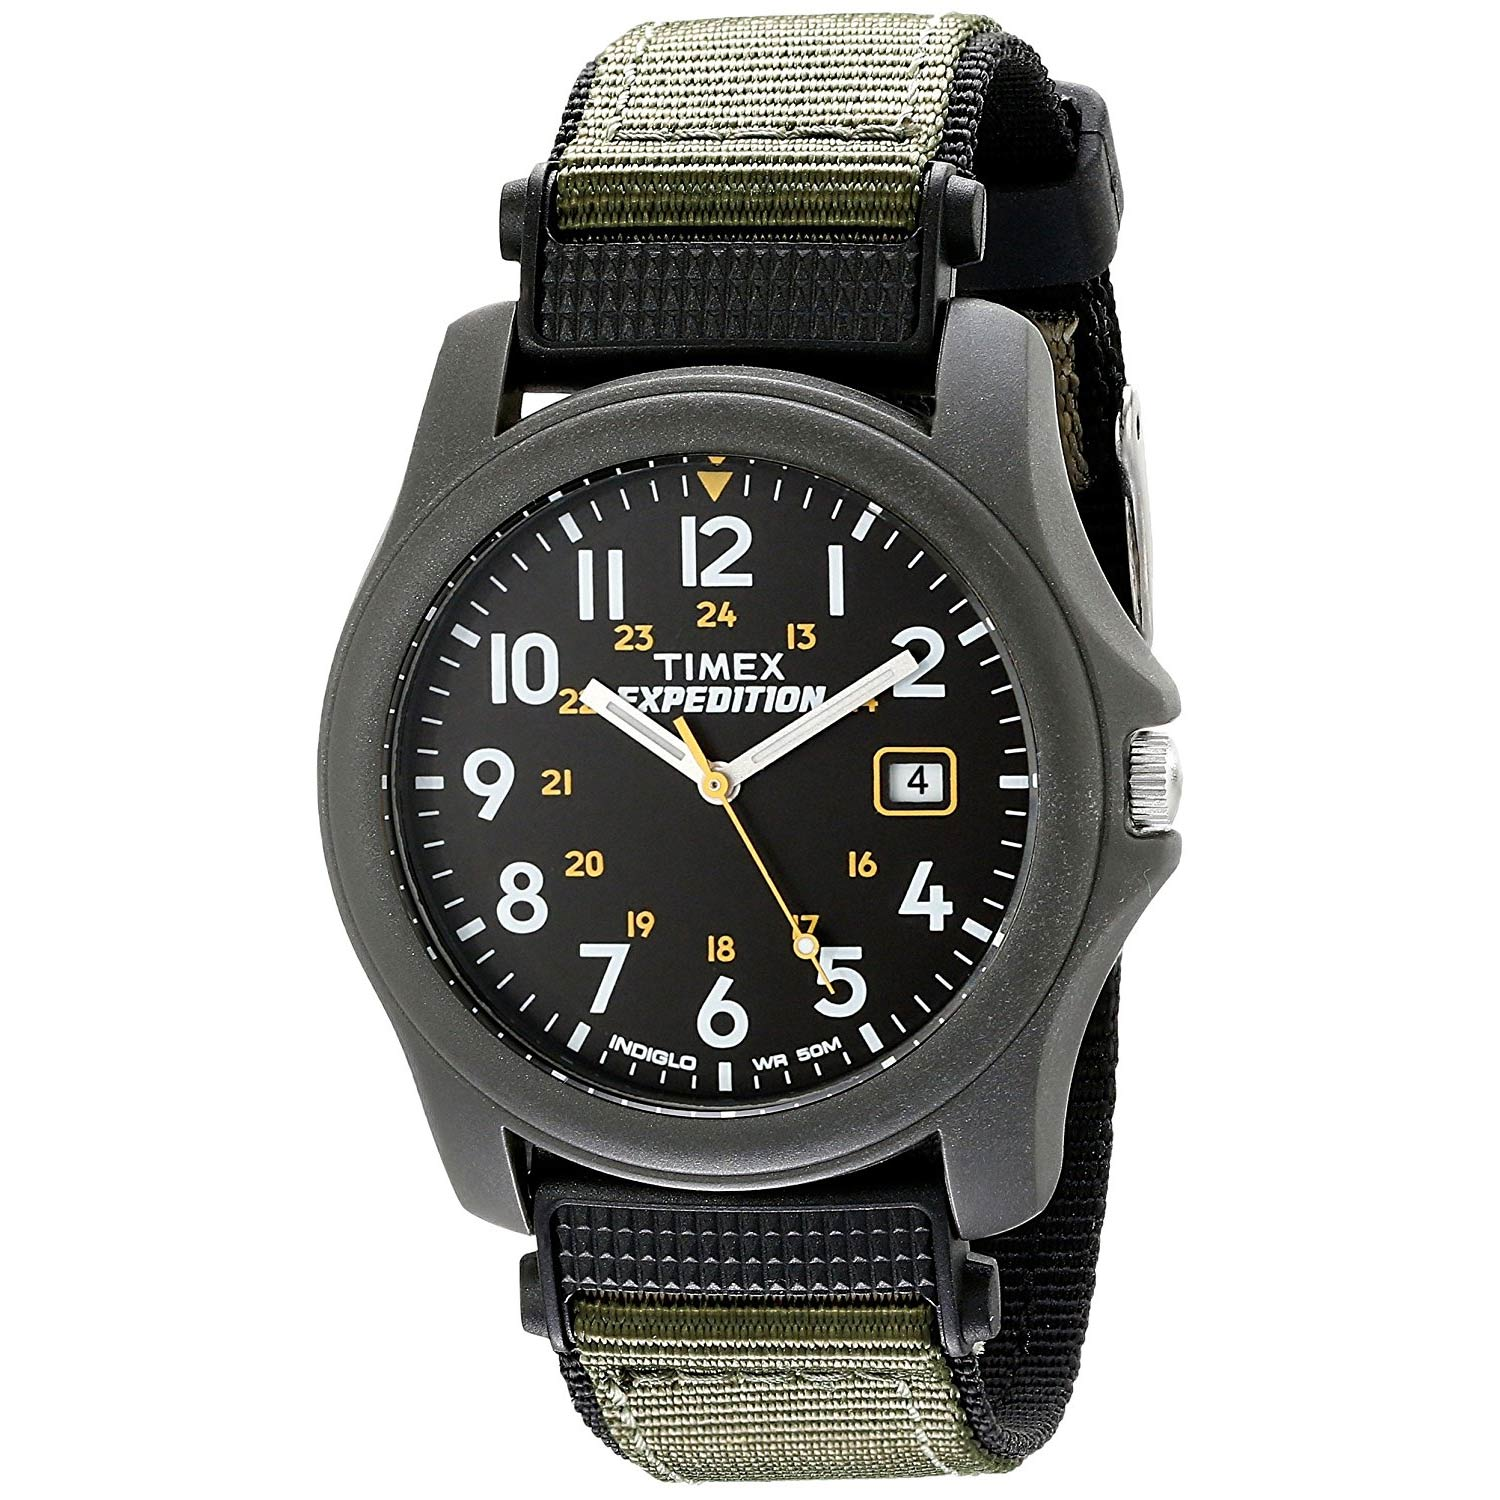 Timex-Expedition-T42571-leichte-Herrenuhr-mit-robustem-Nylon-Textil-Armband